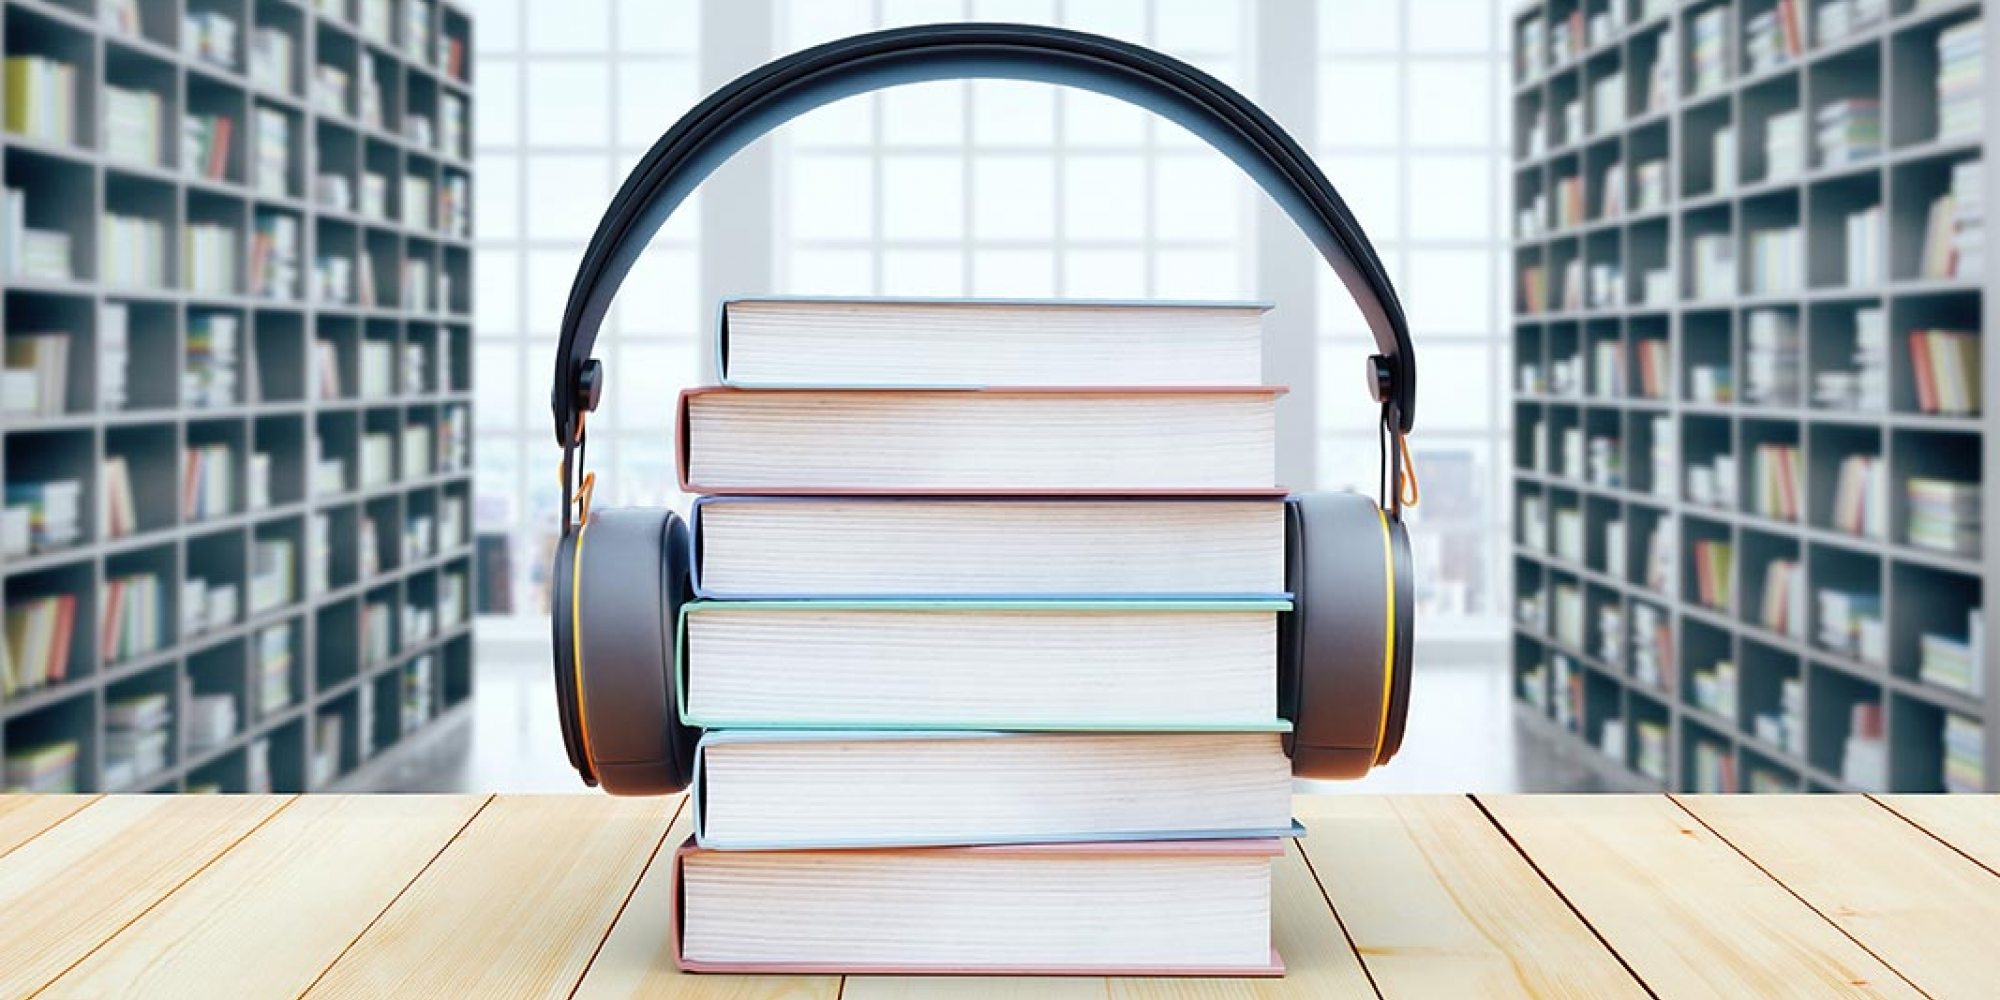 Discover the 5 Reasons Why Audiobooks are so Popular